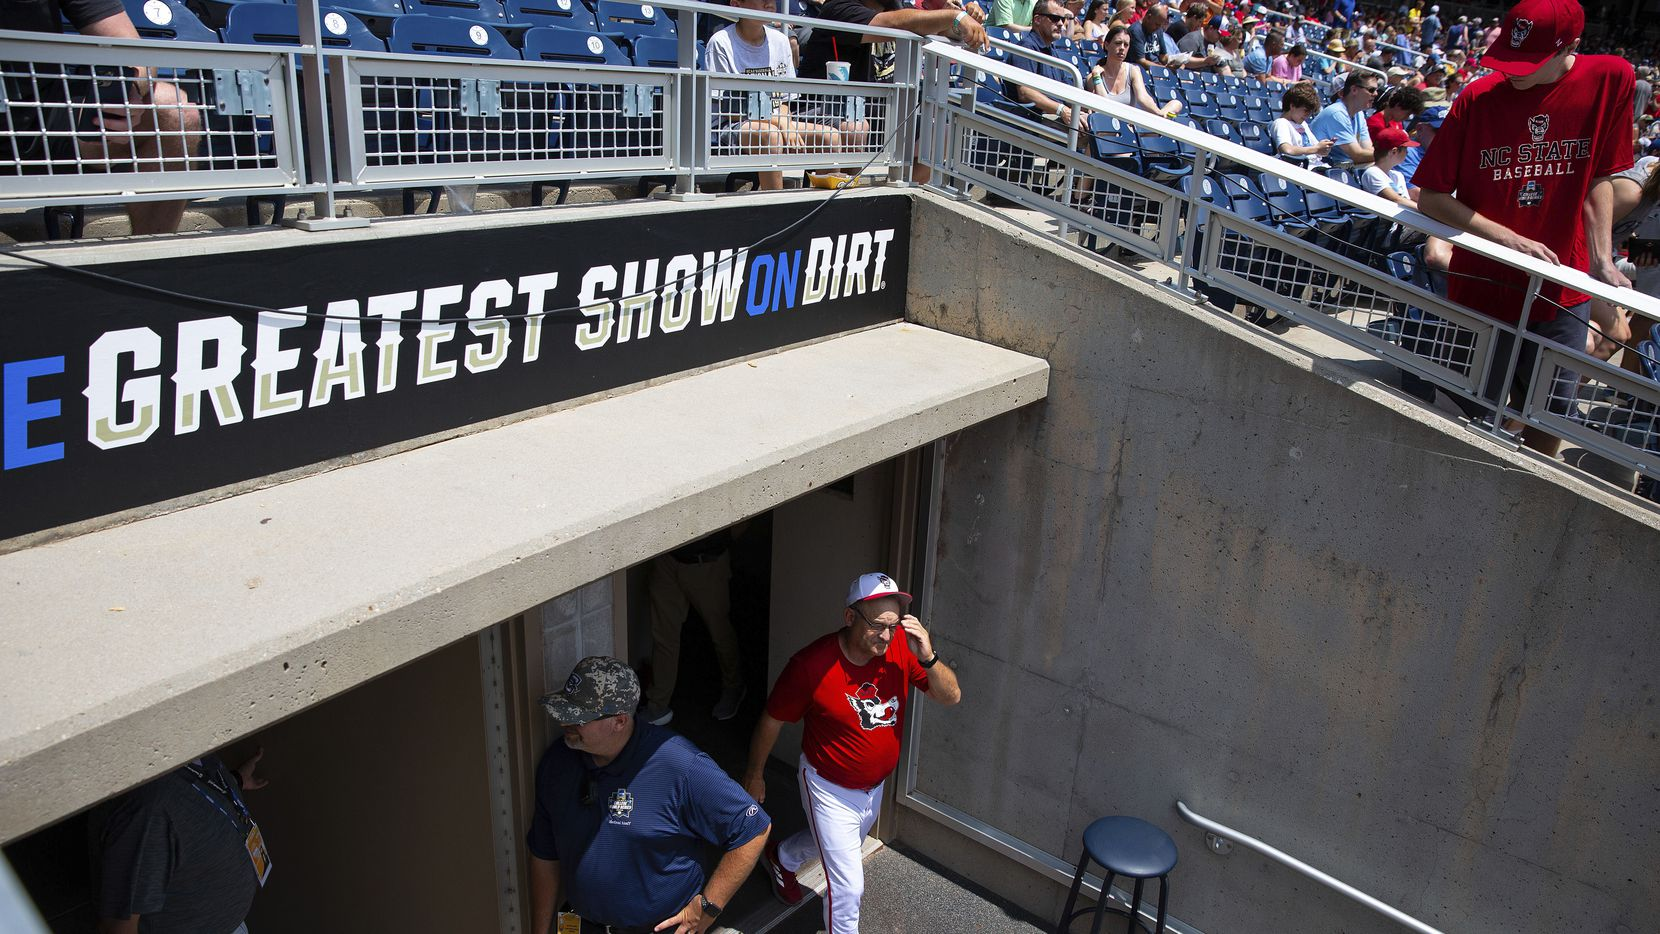 North Carolina State head Coach Elliott Avent exits the locker room during a delay due to COVID-19 safety protocols before their baseball game against Vanderbilt at the College World Series Friday, June 25, 2021, at TD Ameritrade Park in Omaha, Neb.